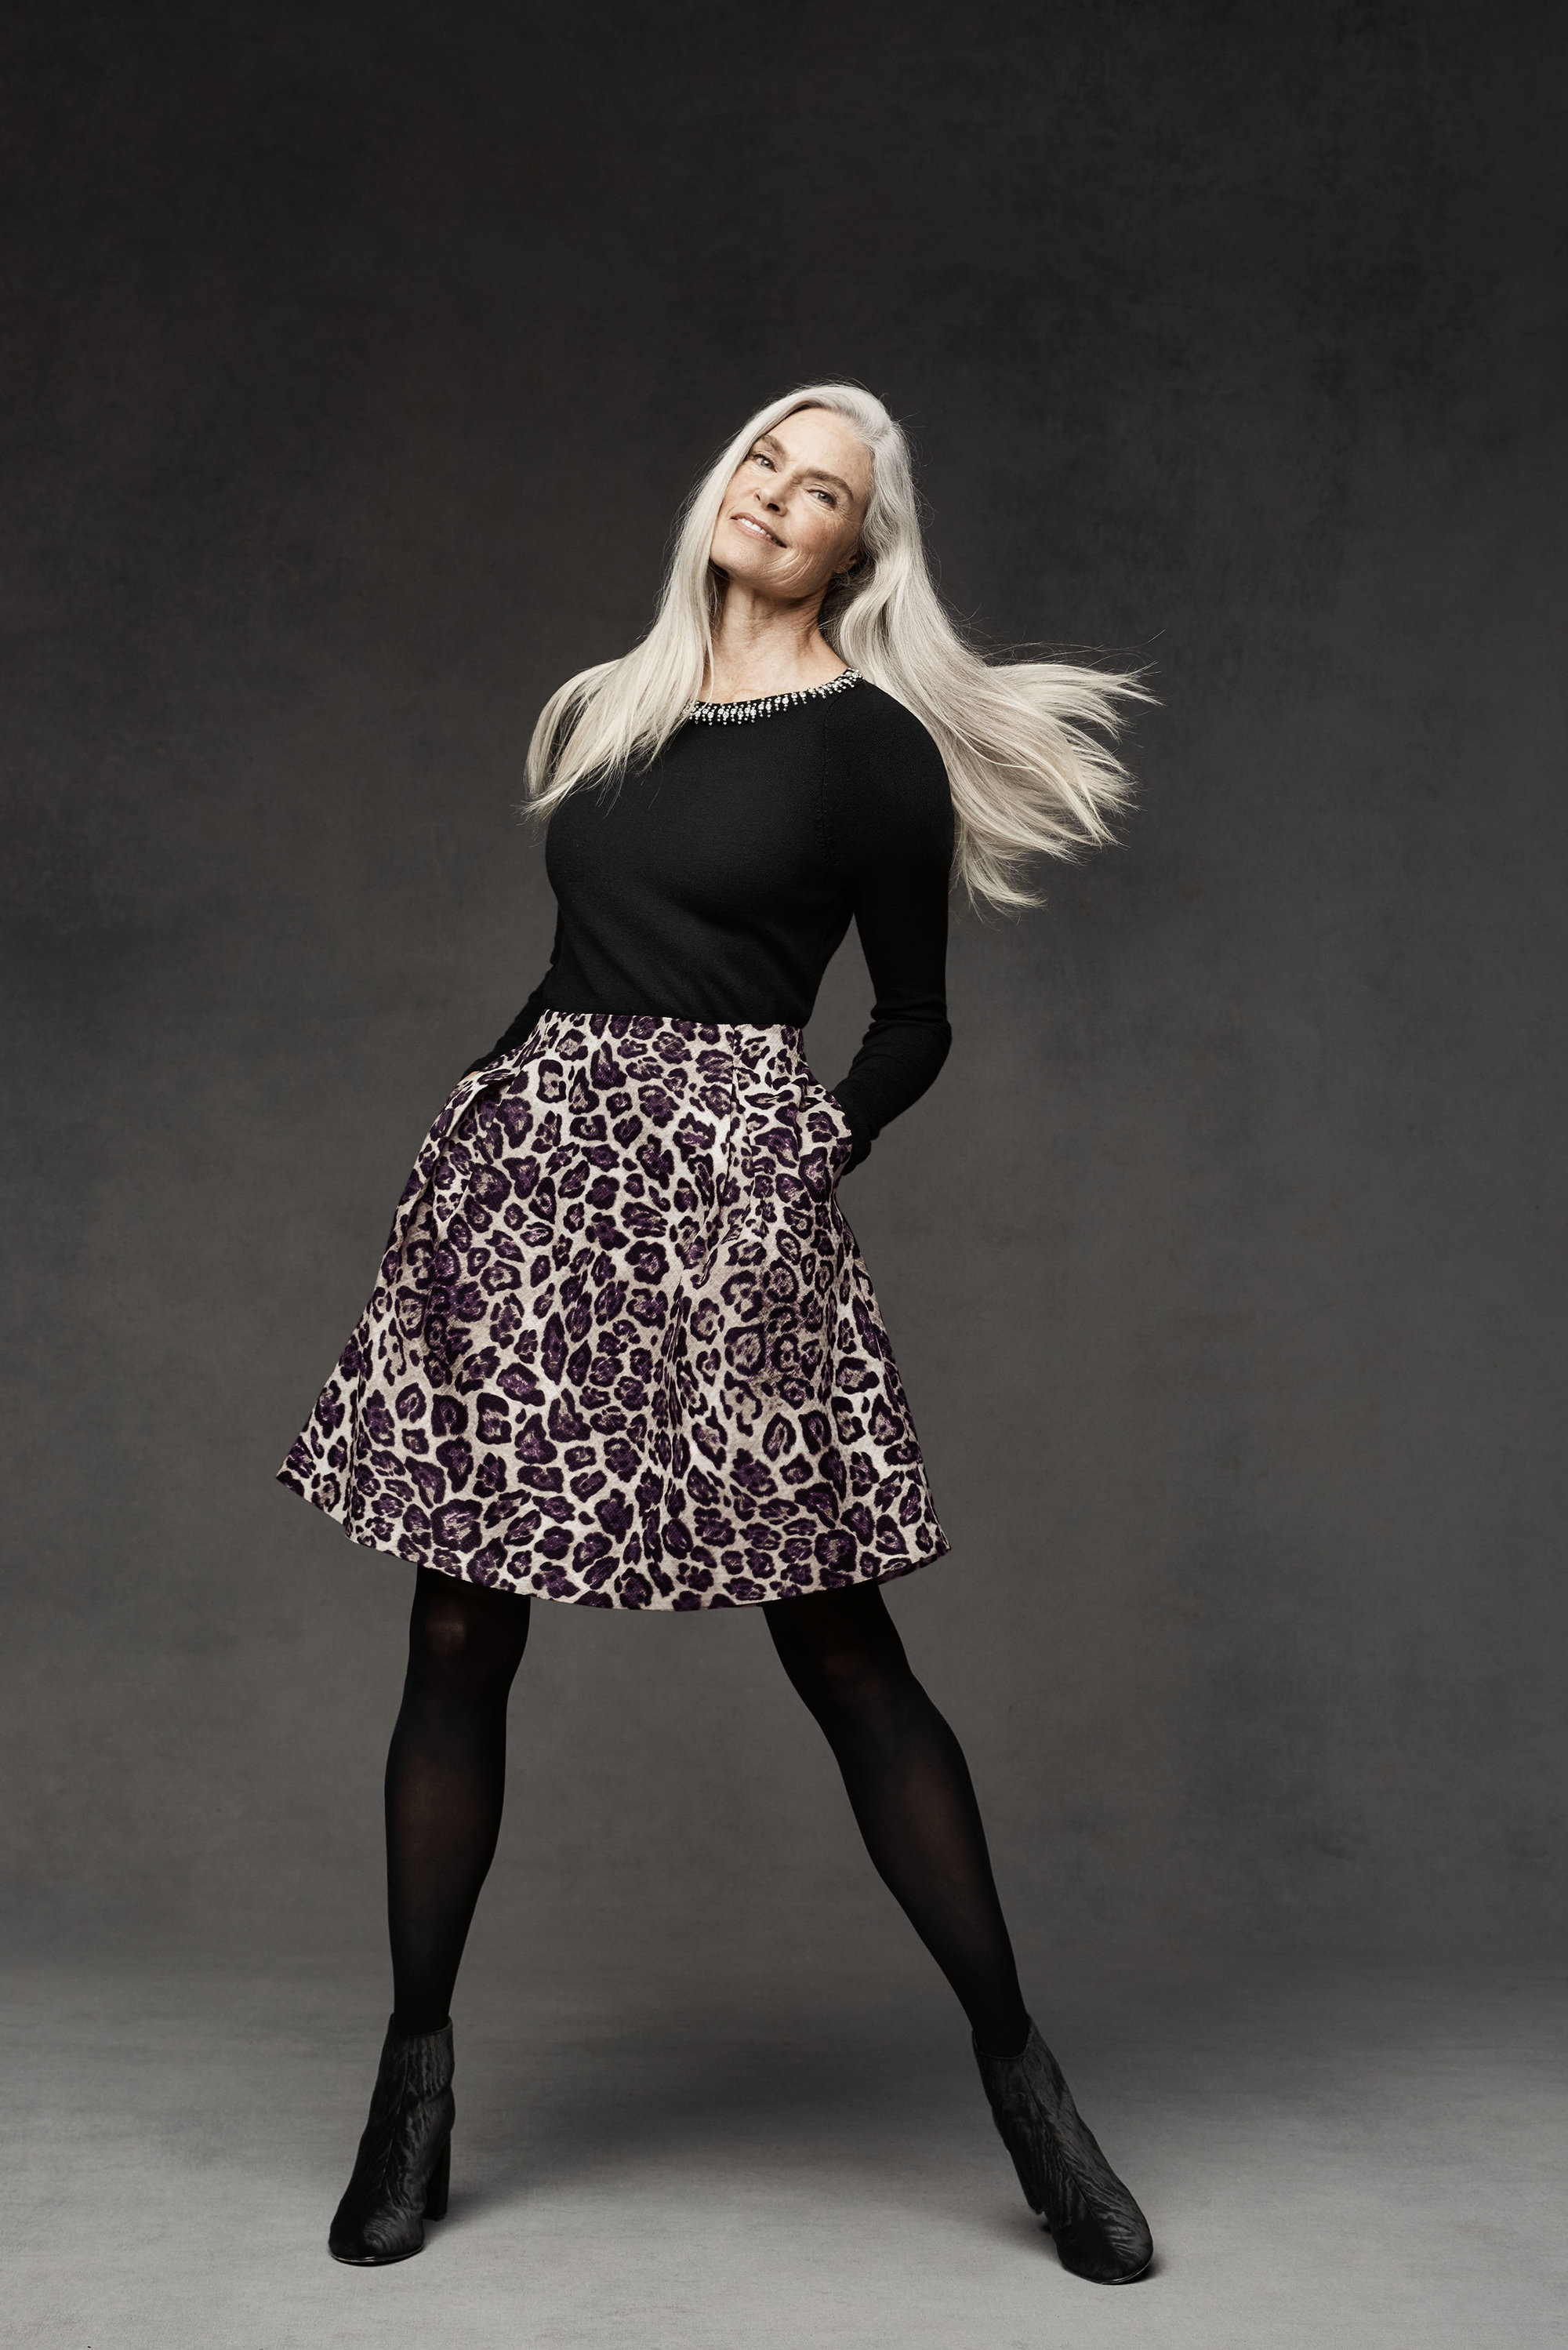 Dressbarn's New Campaign - Embed 2